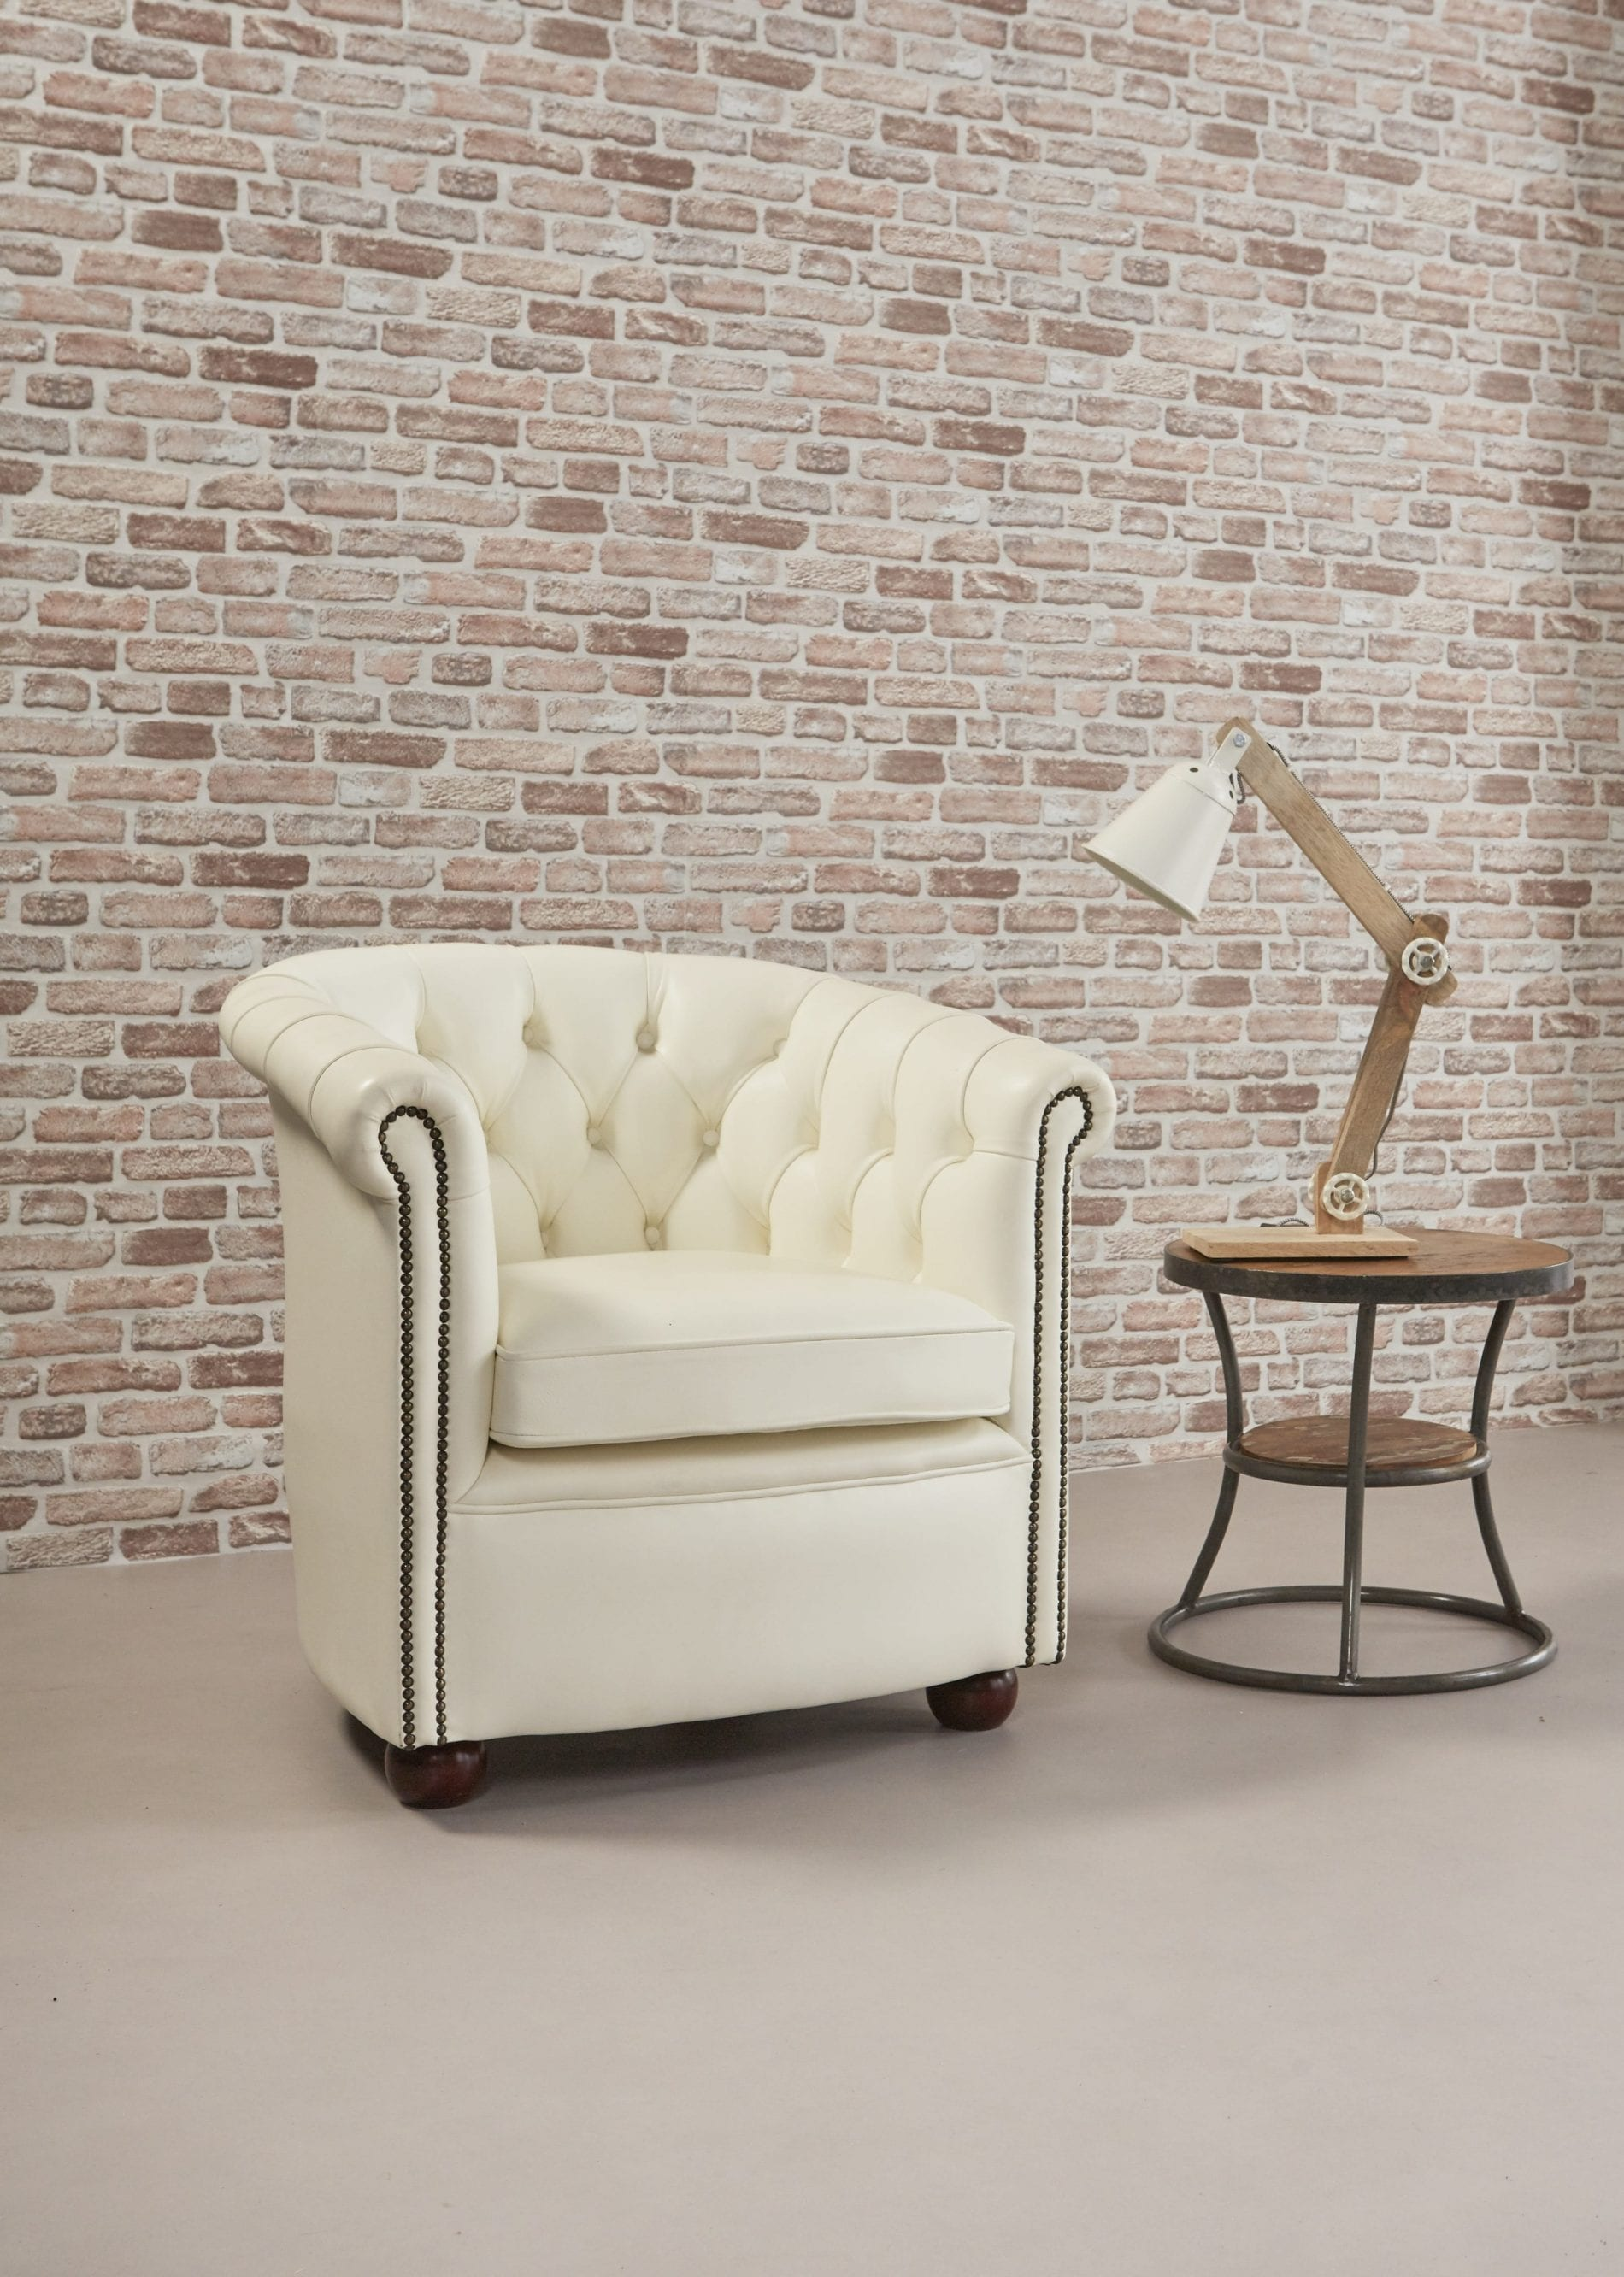 Delta-chesterfield-traditioneel-tub-chair-byran-magnolia-white-zijaanzicht-rechts-met-lamp